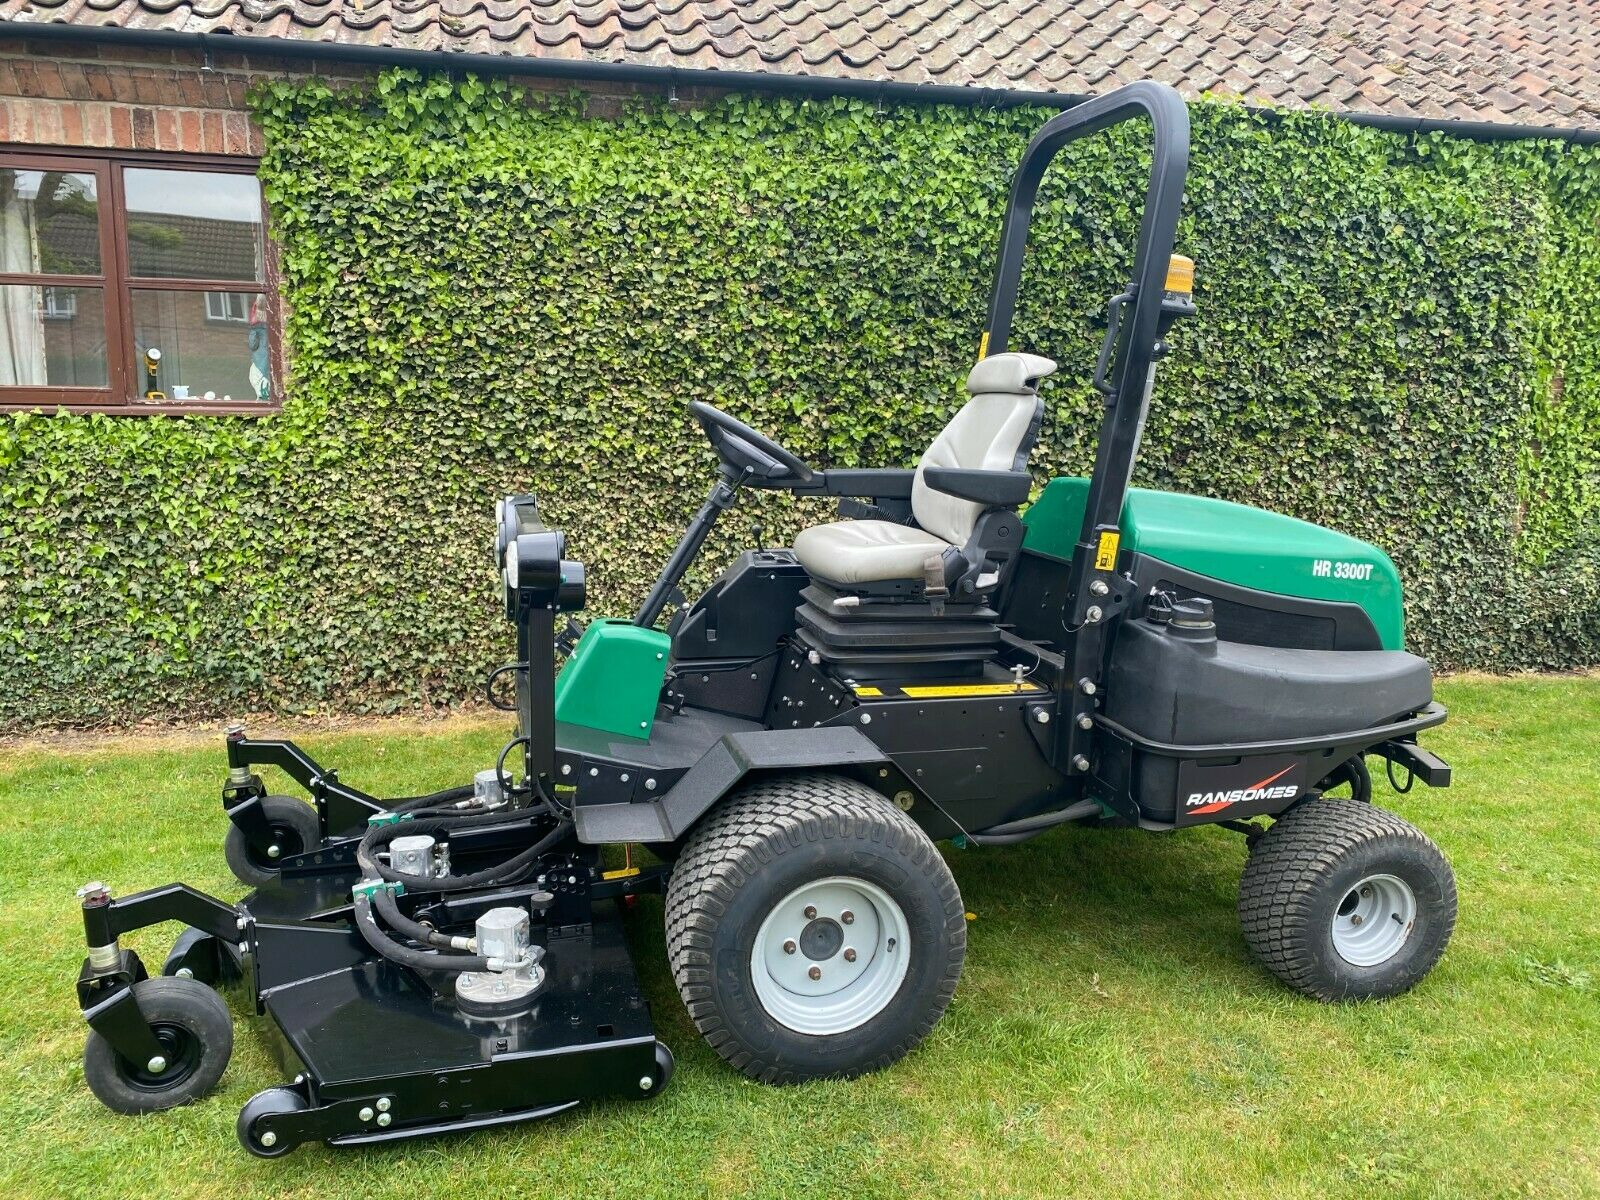 """RANSOMES HR3300T UPFRONT ROTARY, 60"""" CUT, 4x4, DIESEL, YEAR 2014, RIDE ON MOWER *PLUS VAT* - Image 3 of 10"""